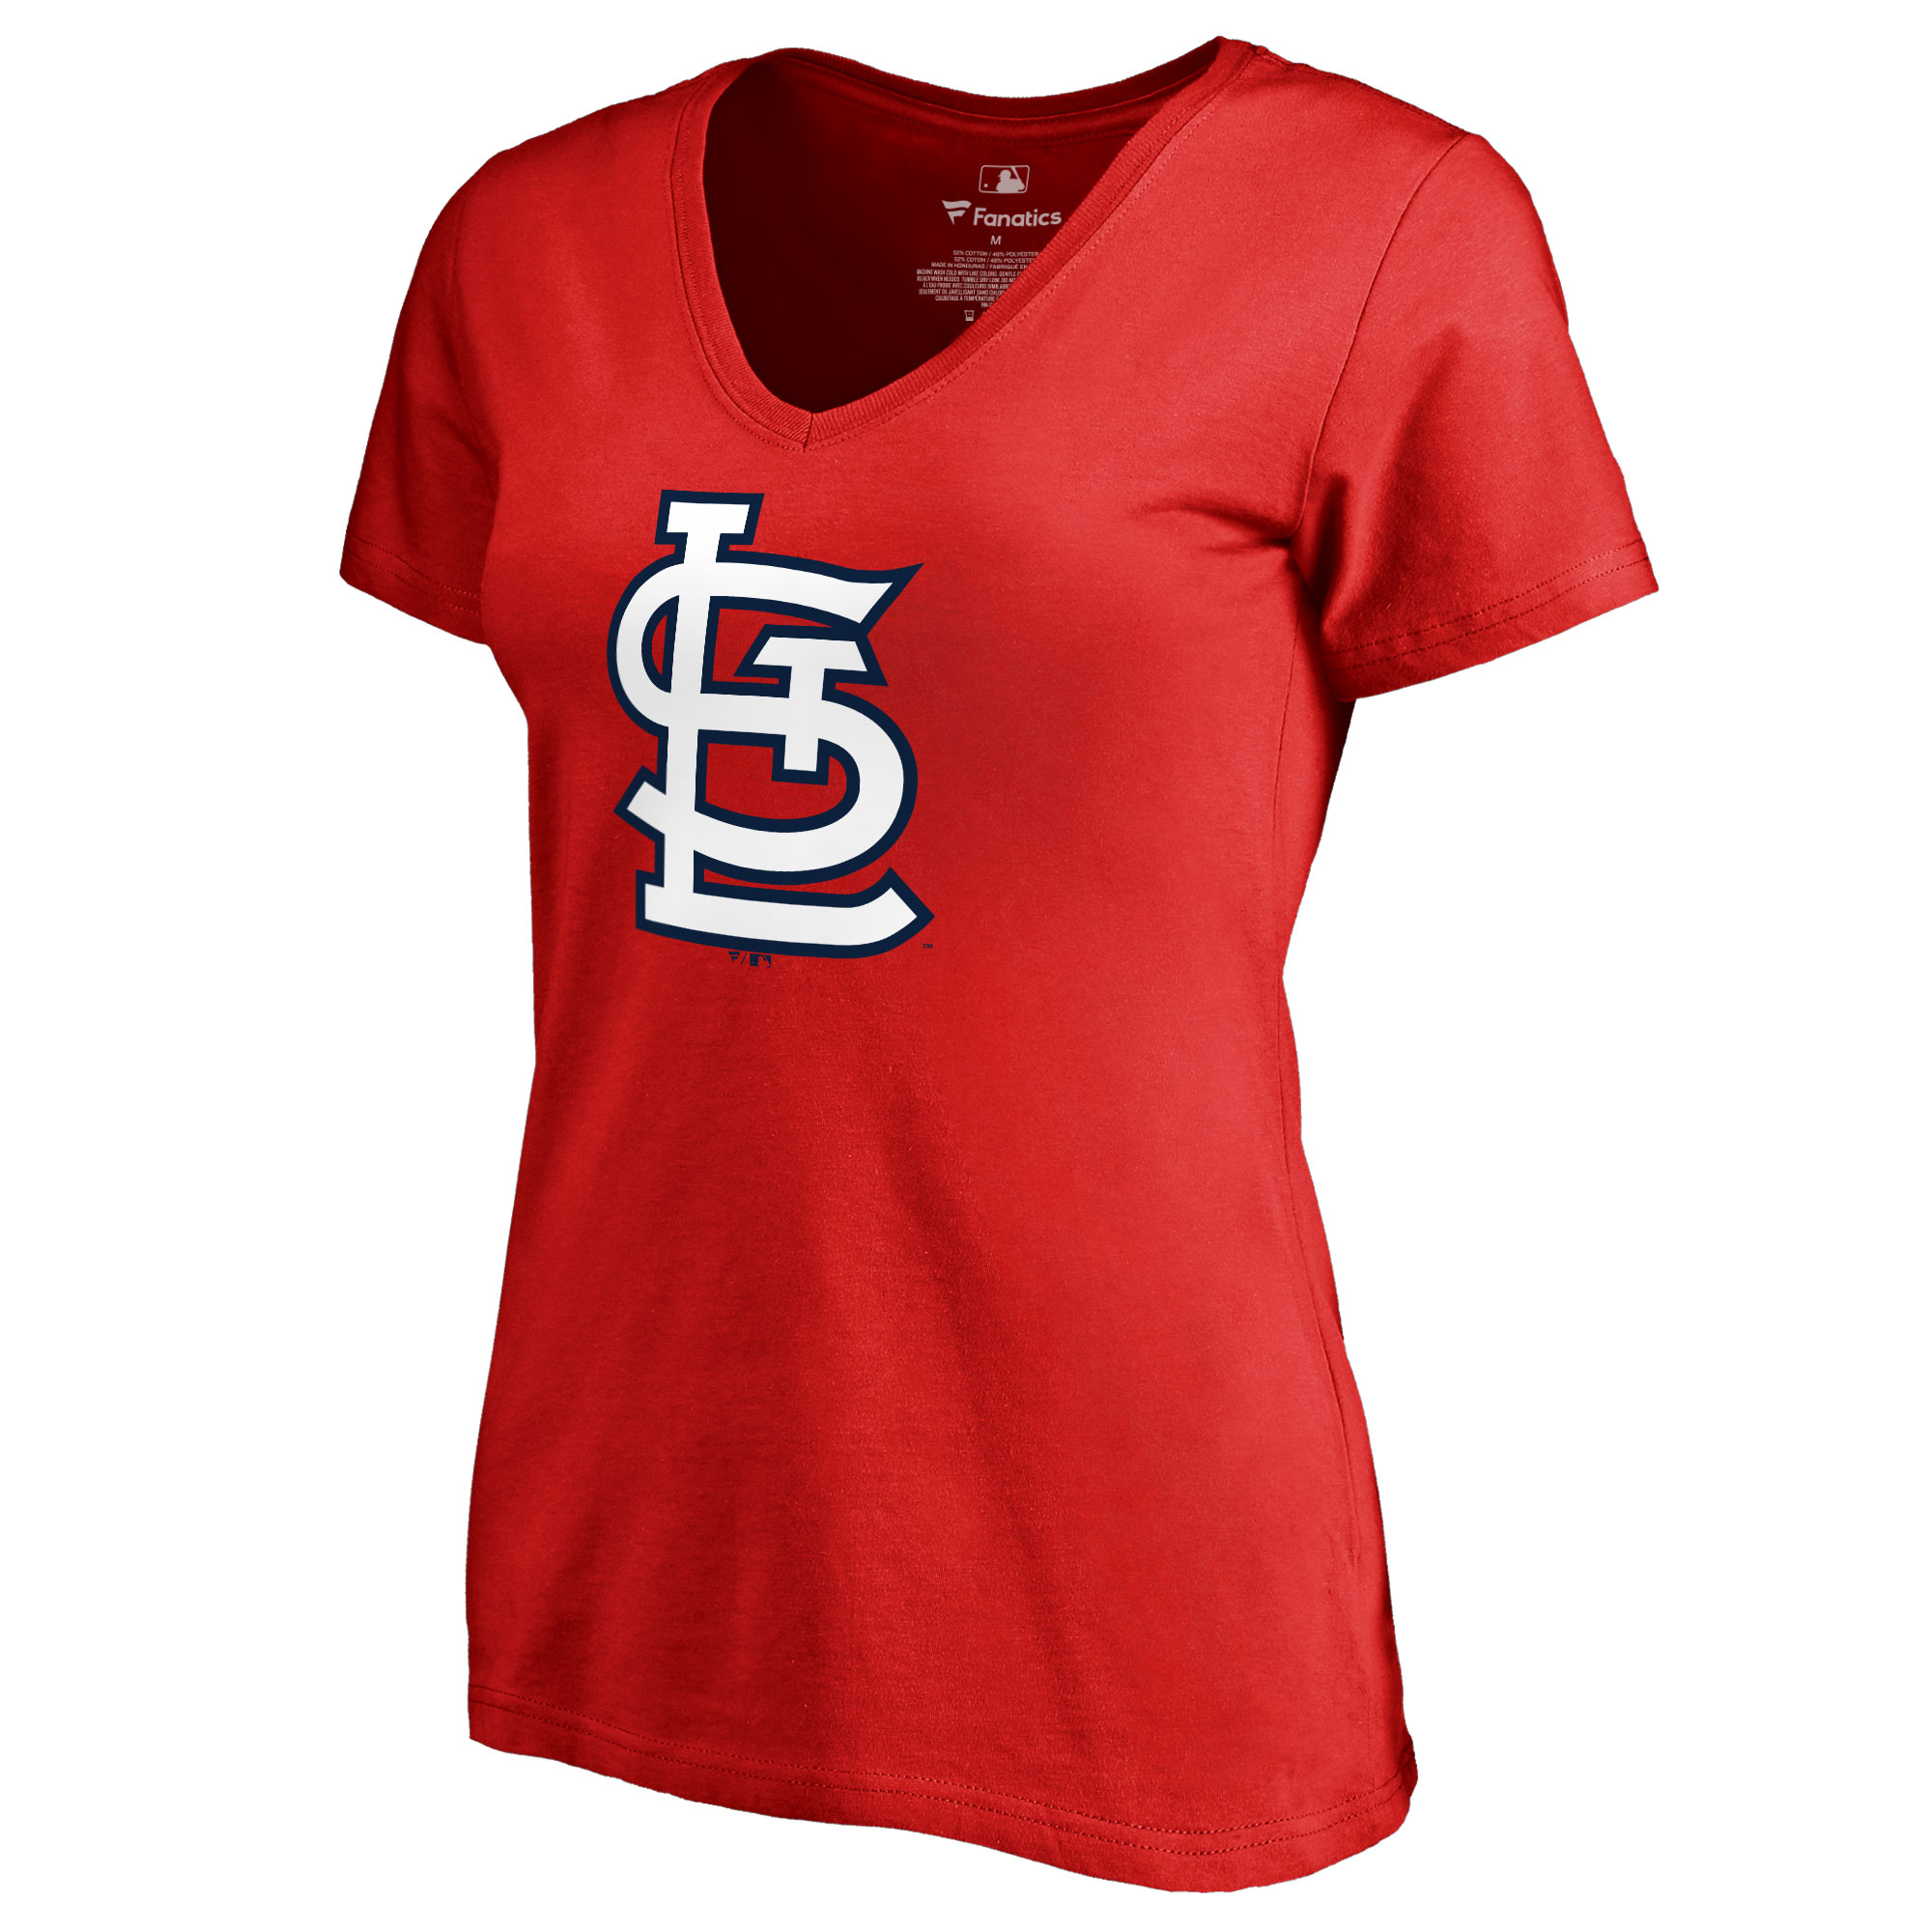 St. Louis Cardinals Women's Team Color Primary Logo V-Neck T-Shirt - Red